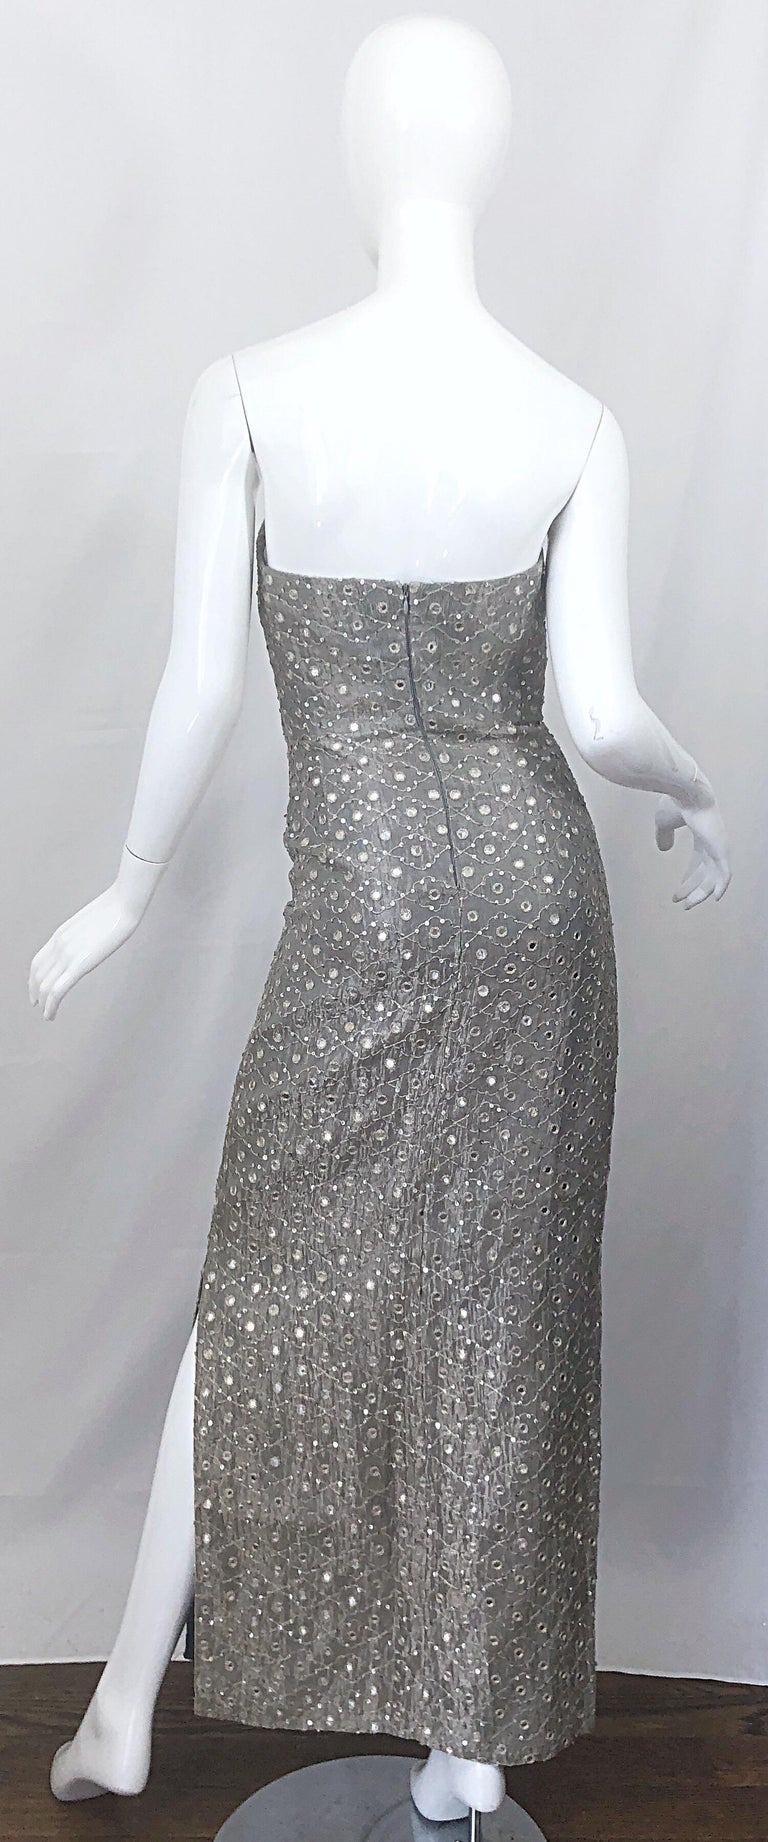 Women's 1990s Silver Grey Mirrored Sequins Size 6 Strapless Silk Vintage Gown Dress For Sale